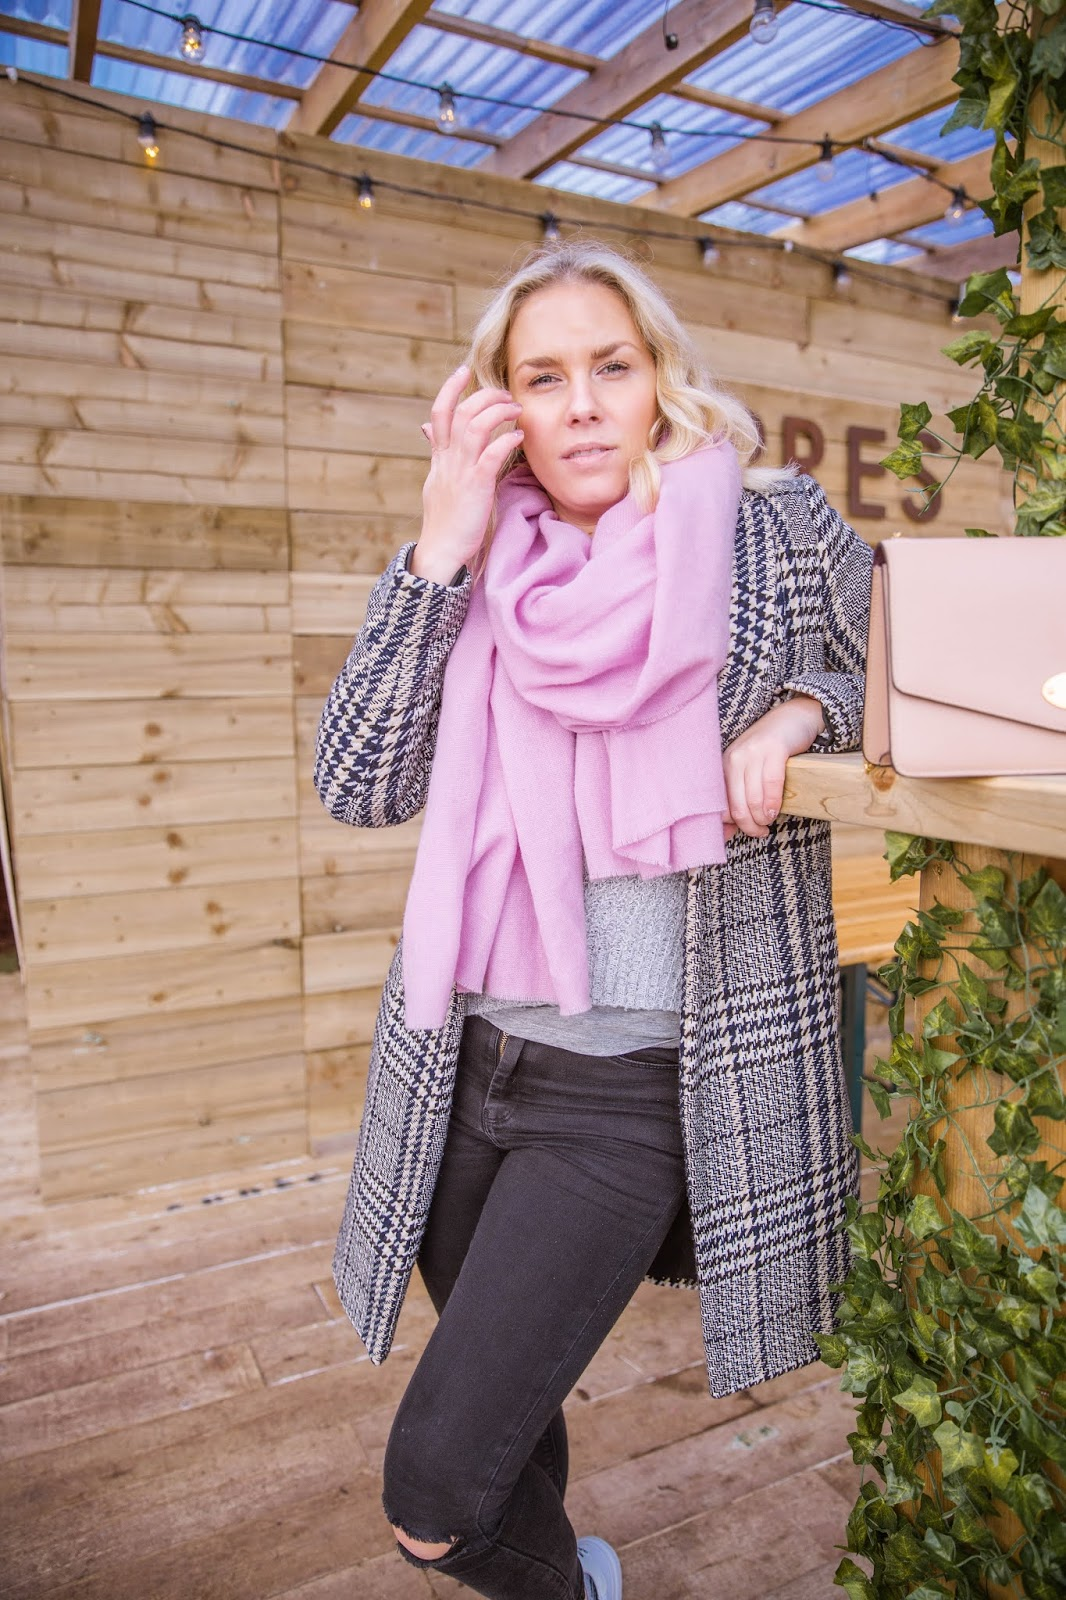 Rachel Emily posing in a wooden bar in a grey coat and pink scarf